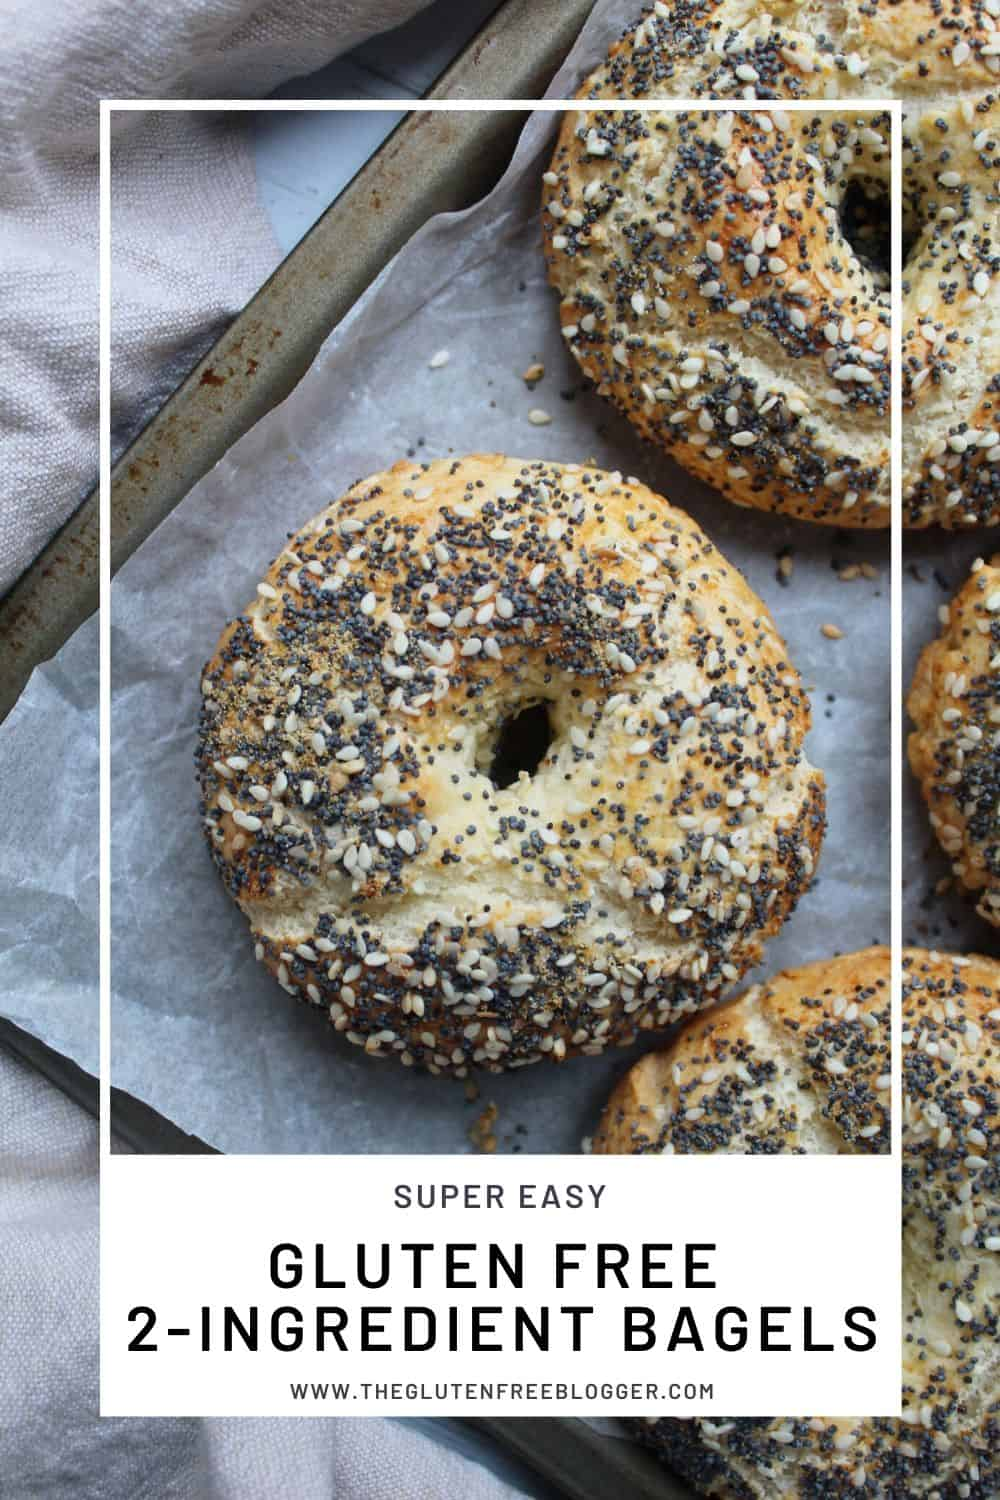 GLUTEN FREE BAGELS EASY 2-INGREDIENT GLUTEN FREE BAGEL RECIPE